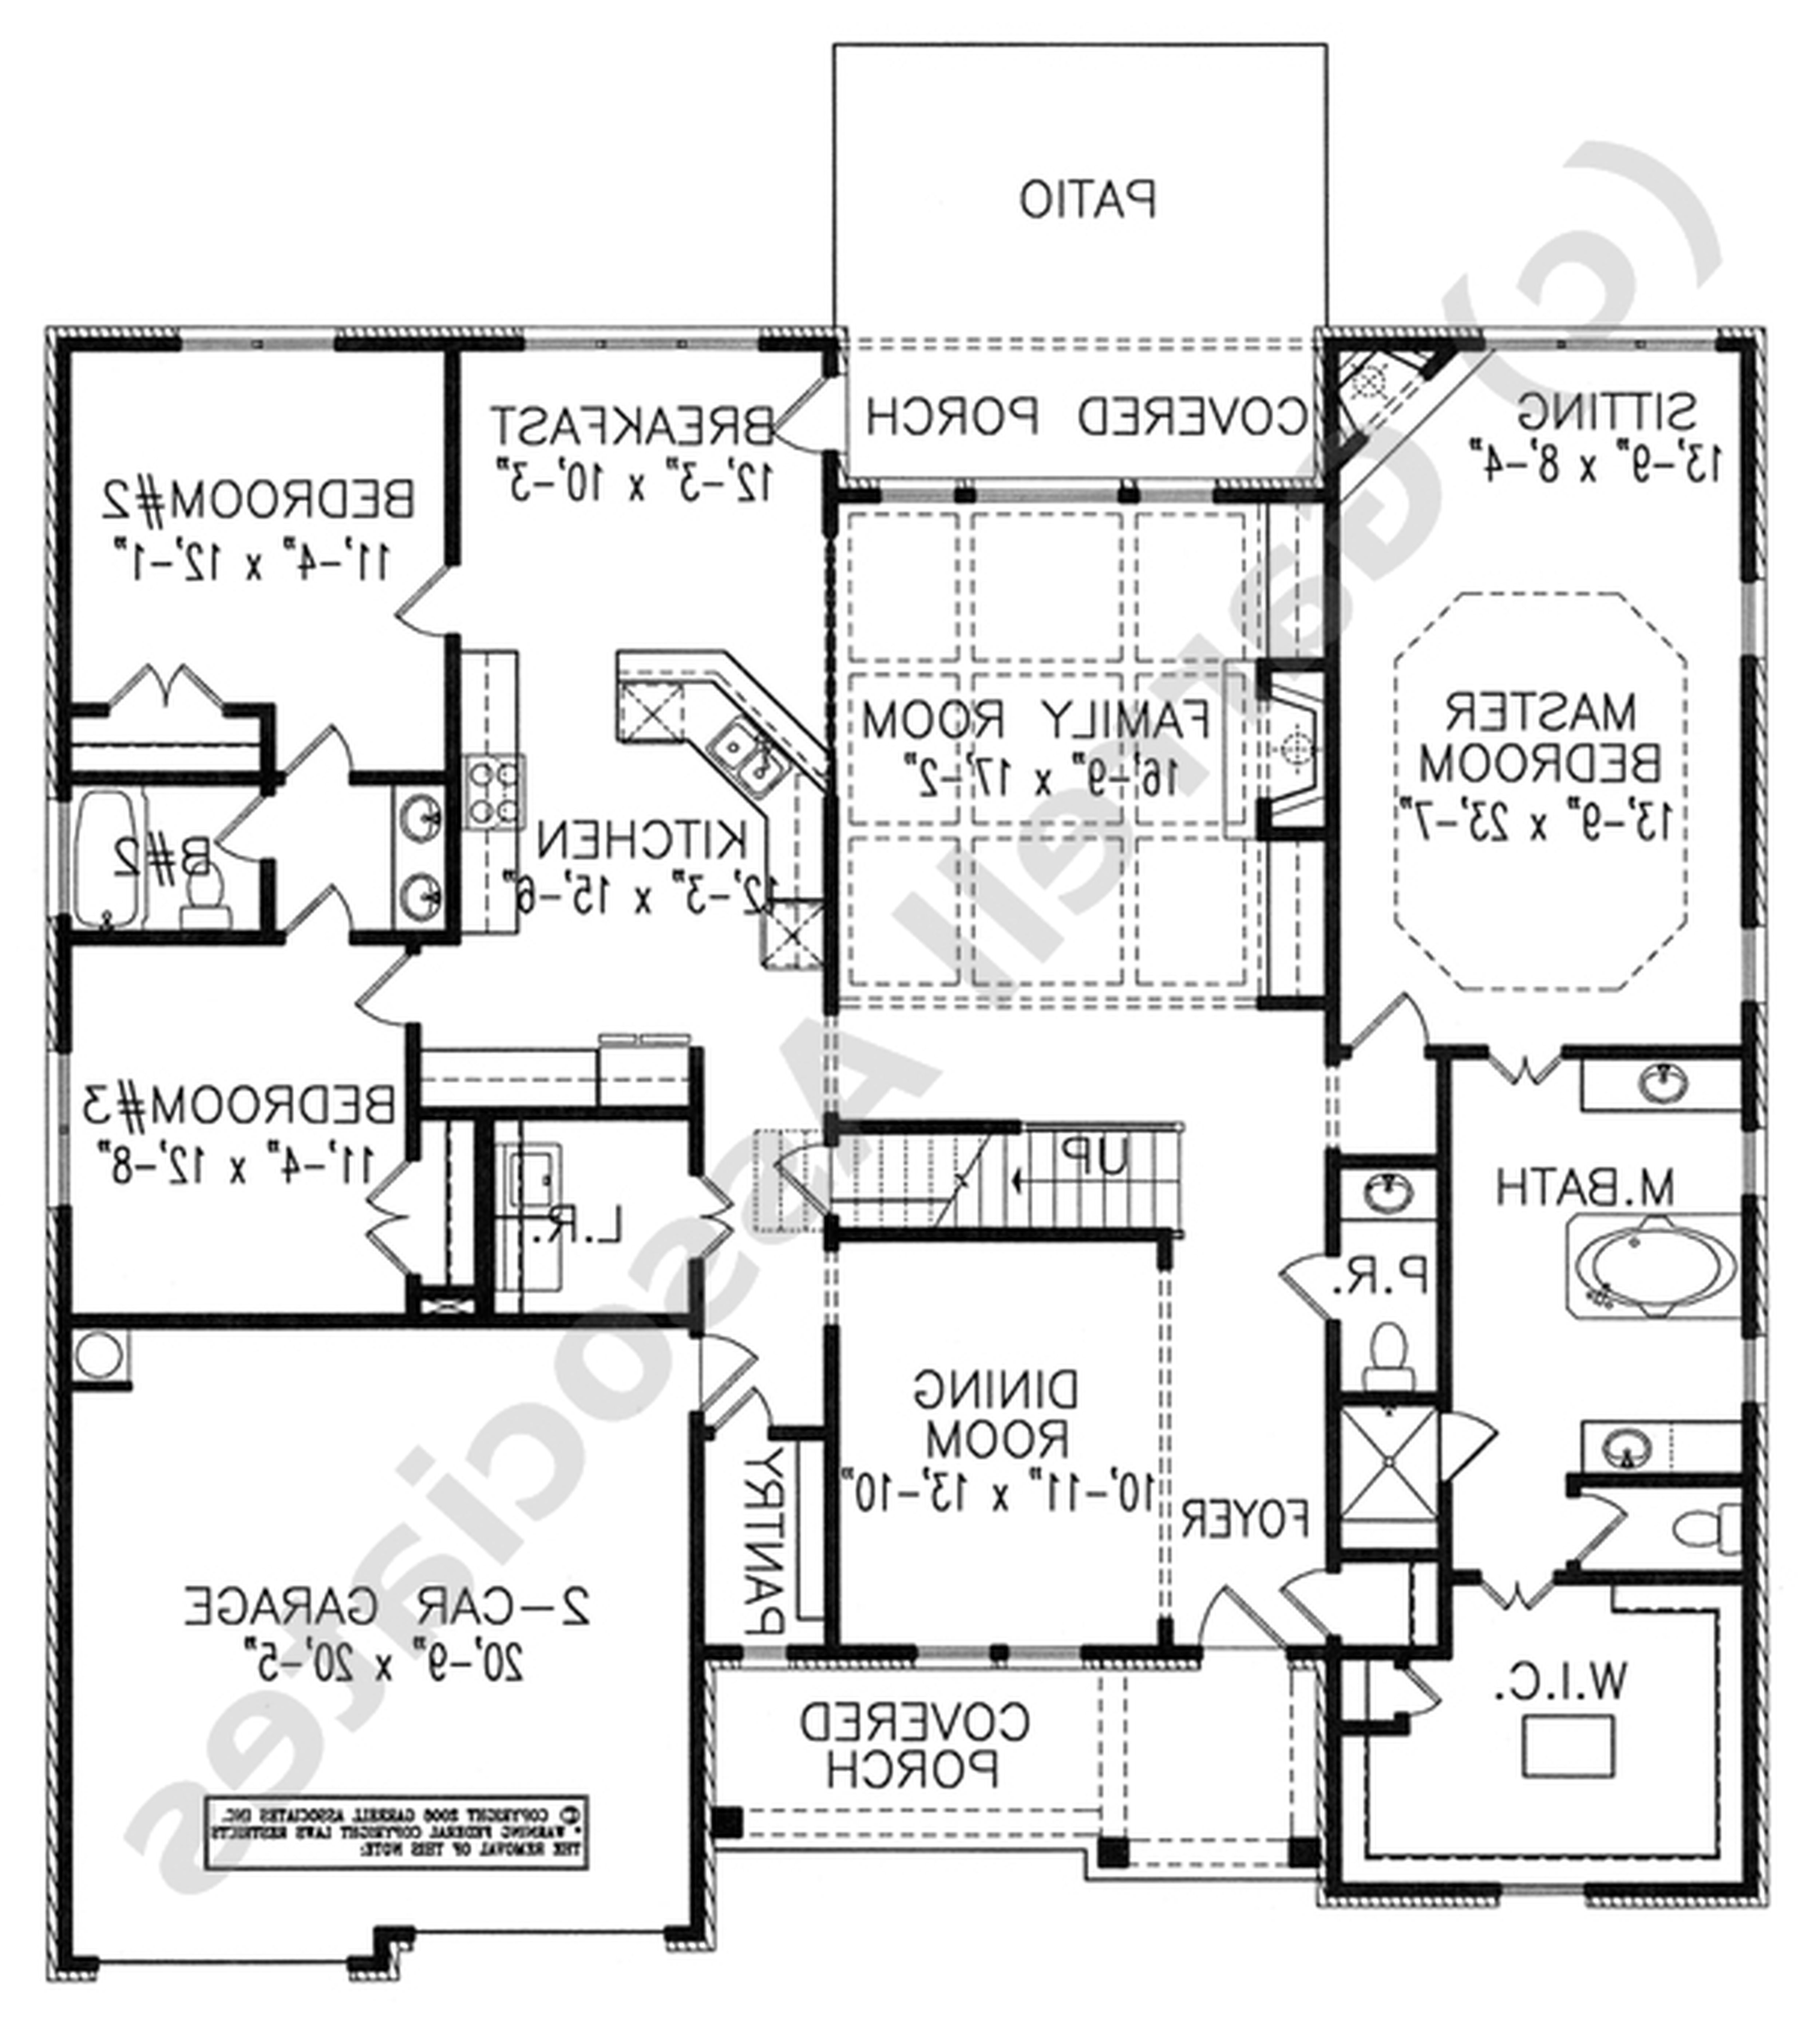 Home decor planning | Home and house style | Pinterest | House ...